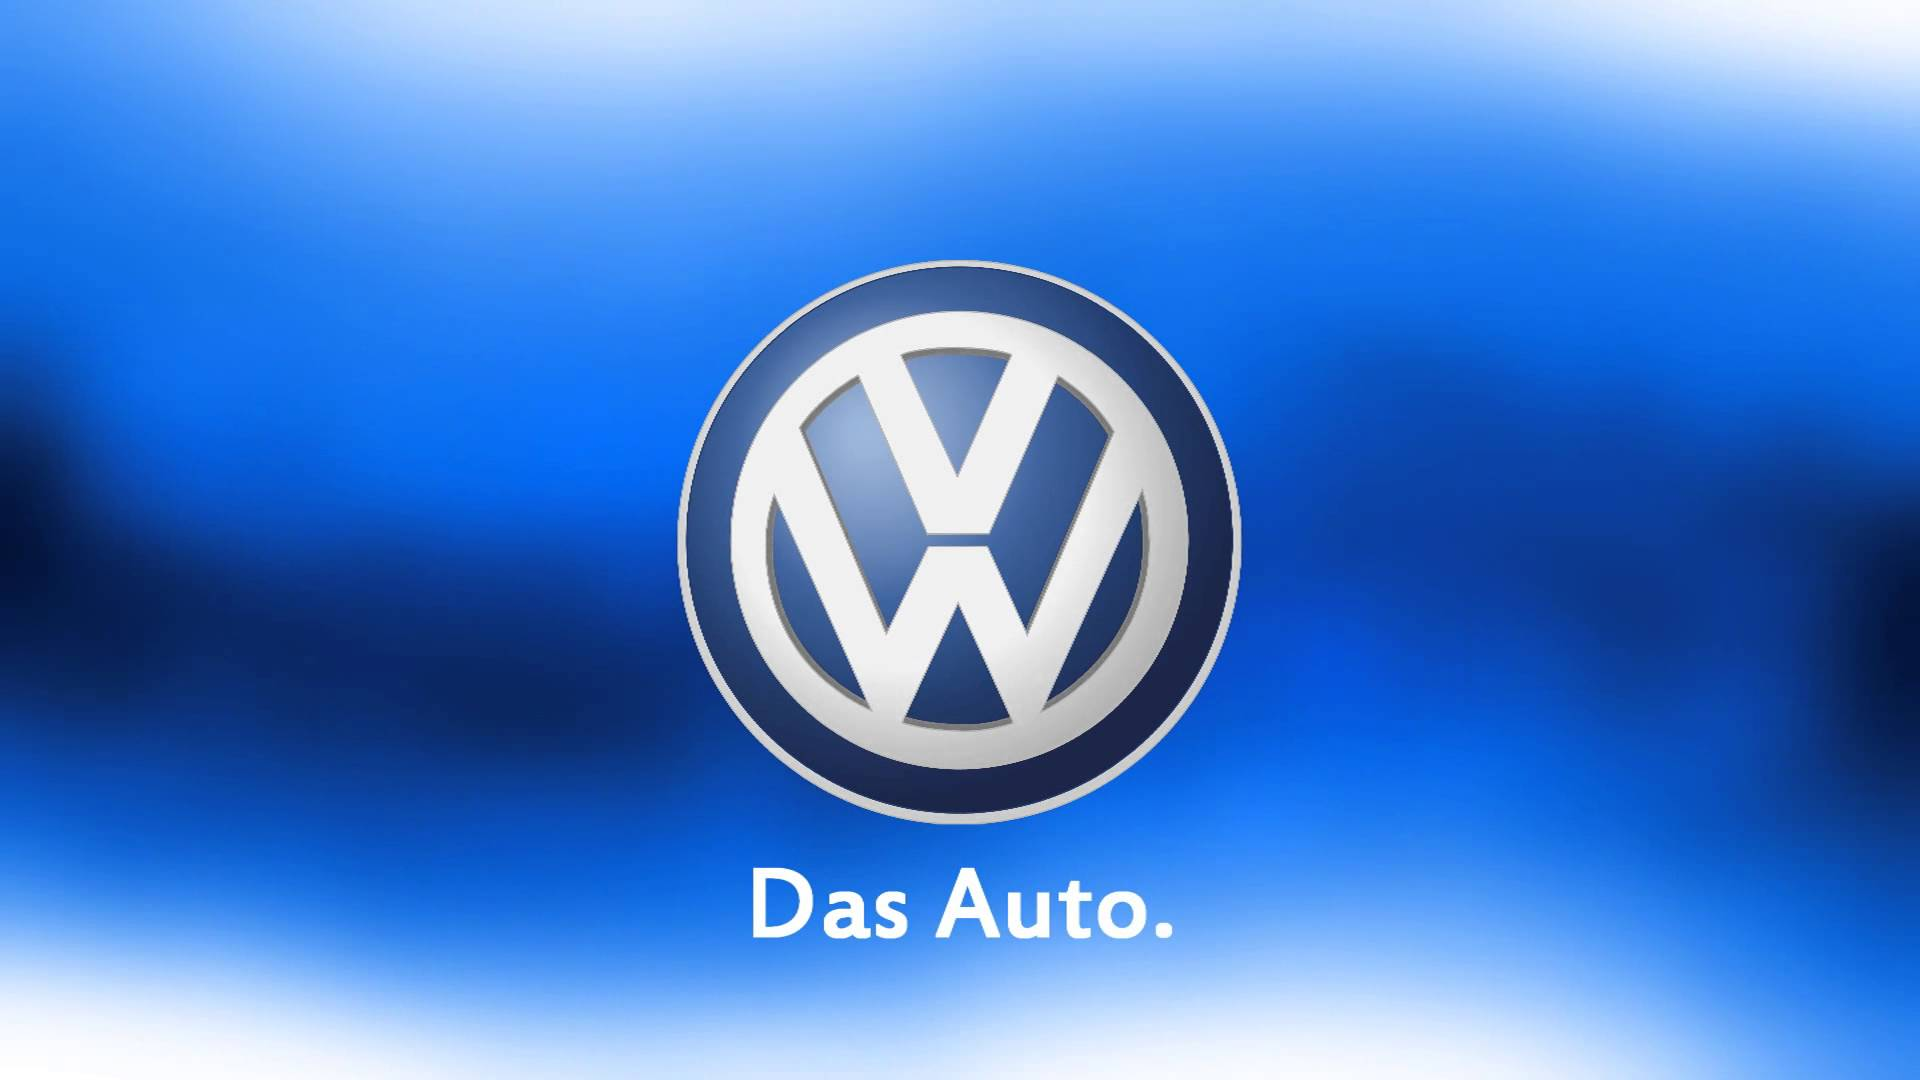 Download Volkswagen Logo Wallpaper Gallery